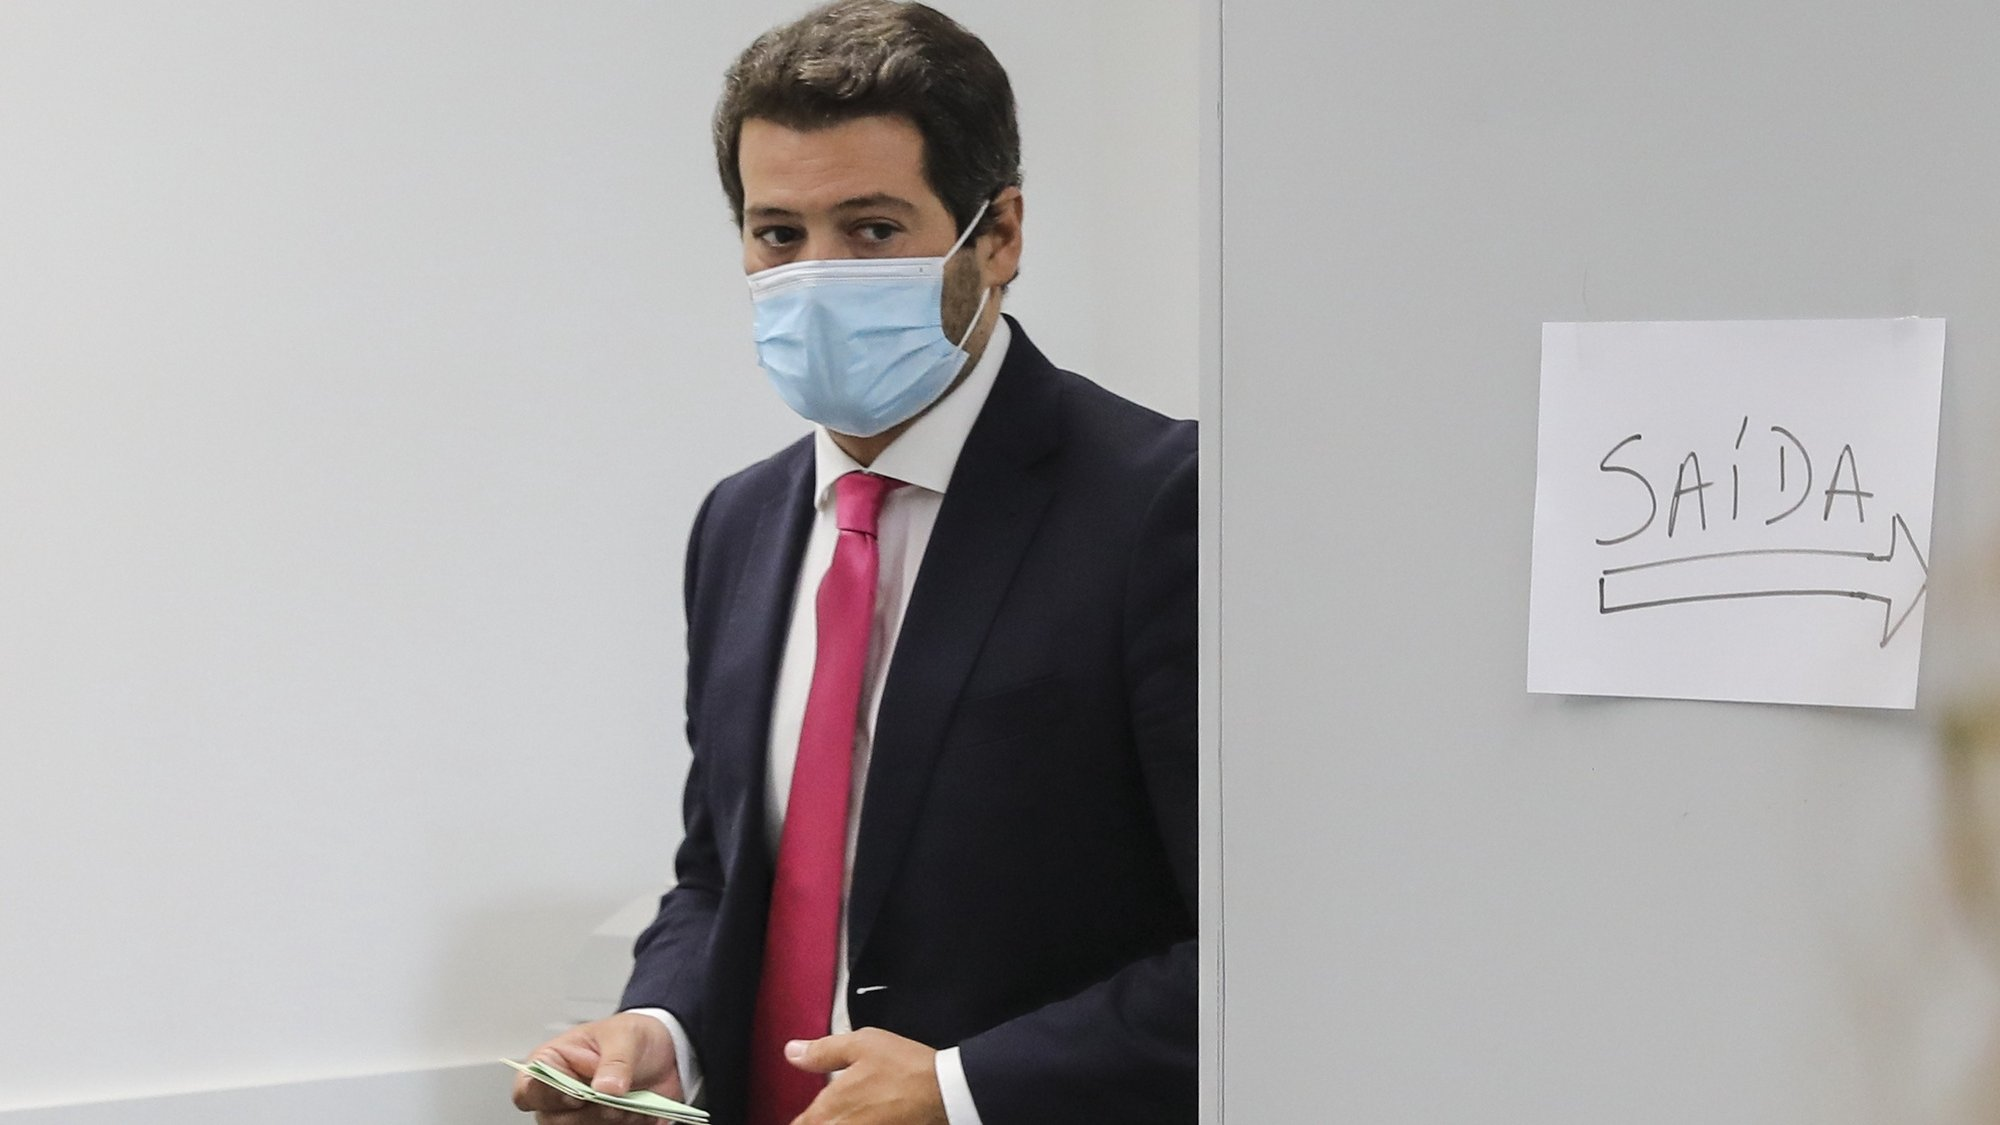 Portuguese national conservative, right-wing populist political party Chega leader André Ventura voting for local elections 26 septeber 2021 in Lisbon. More than 9.3 million electors can vote in the local elections in Portugal. MIGUEL A. LOPES LUSA